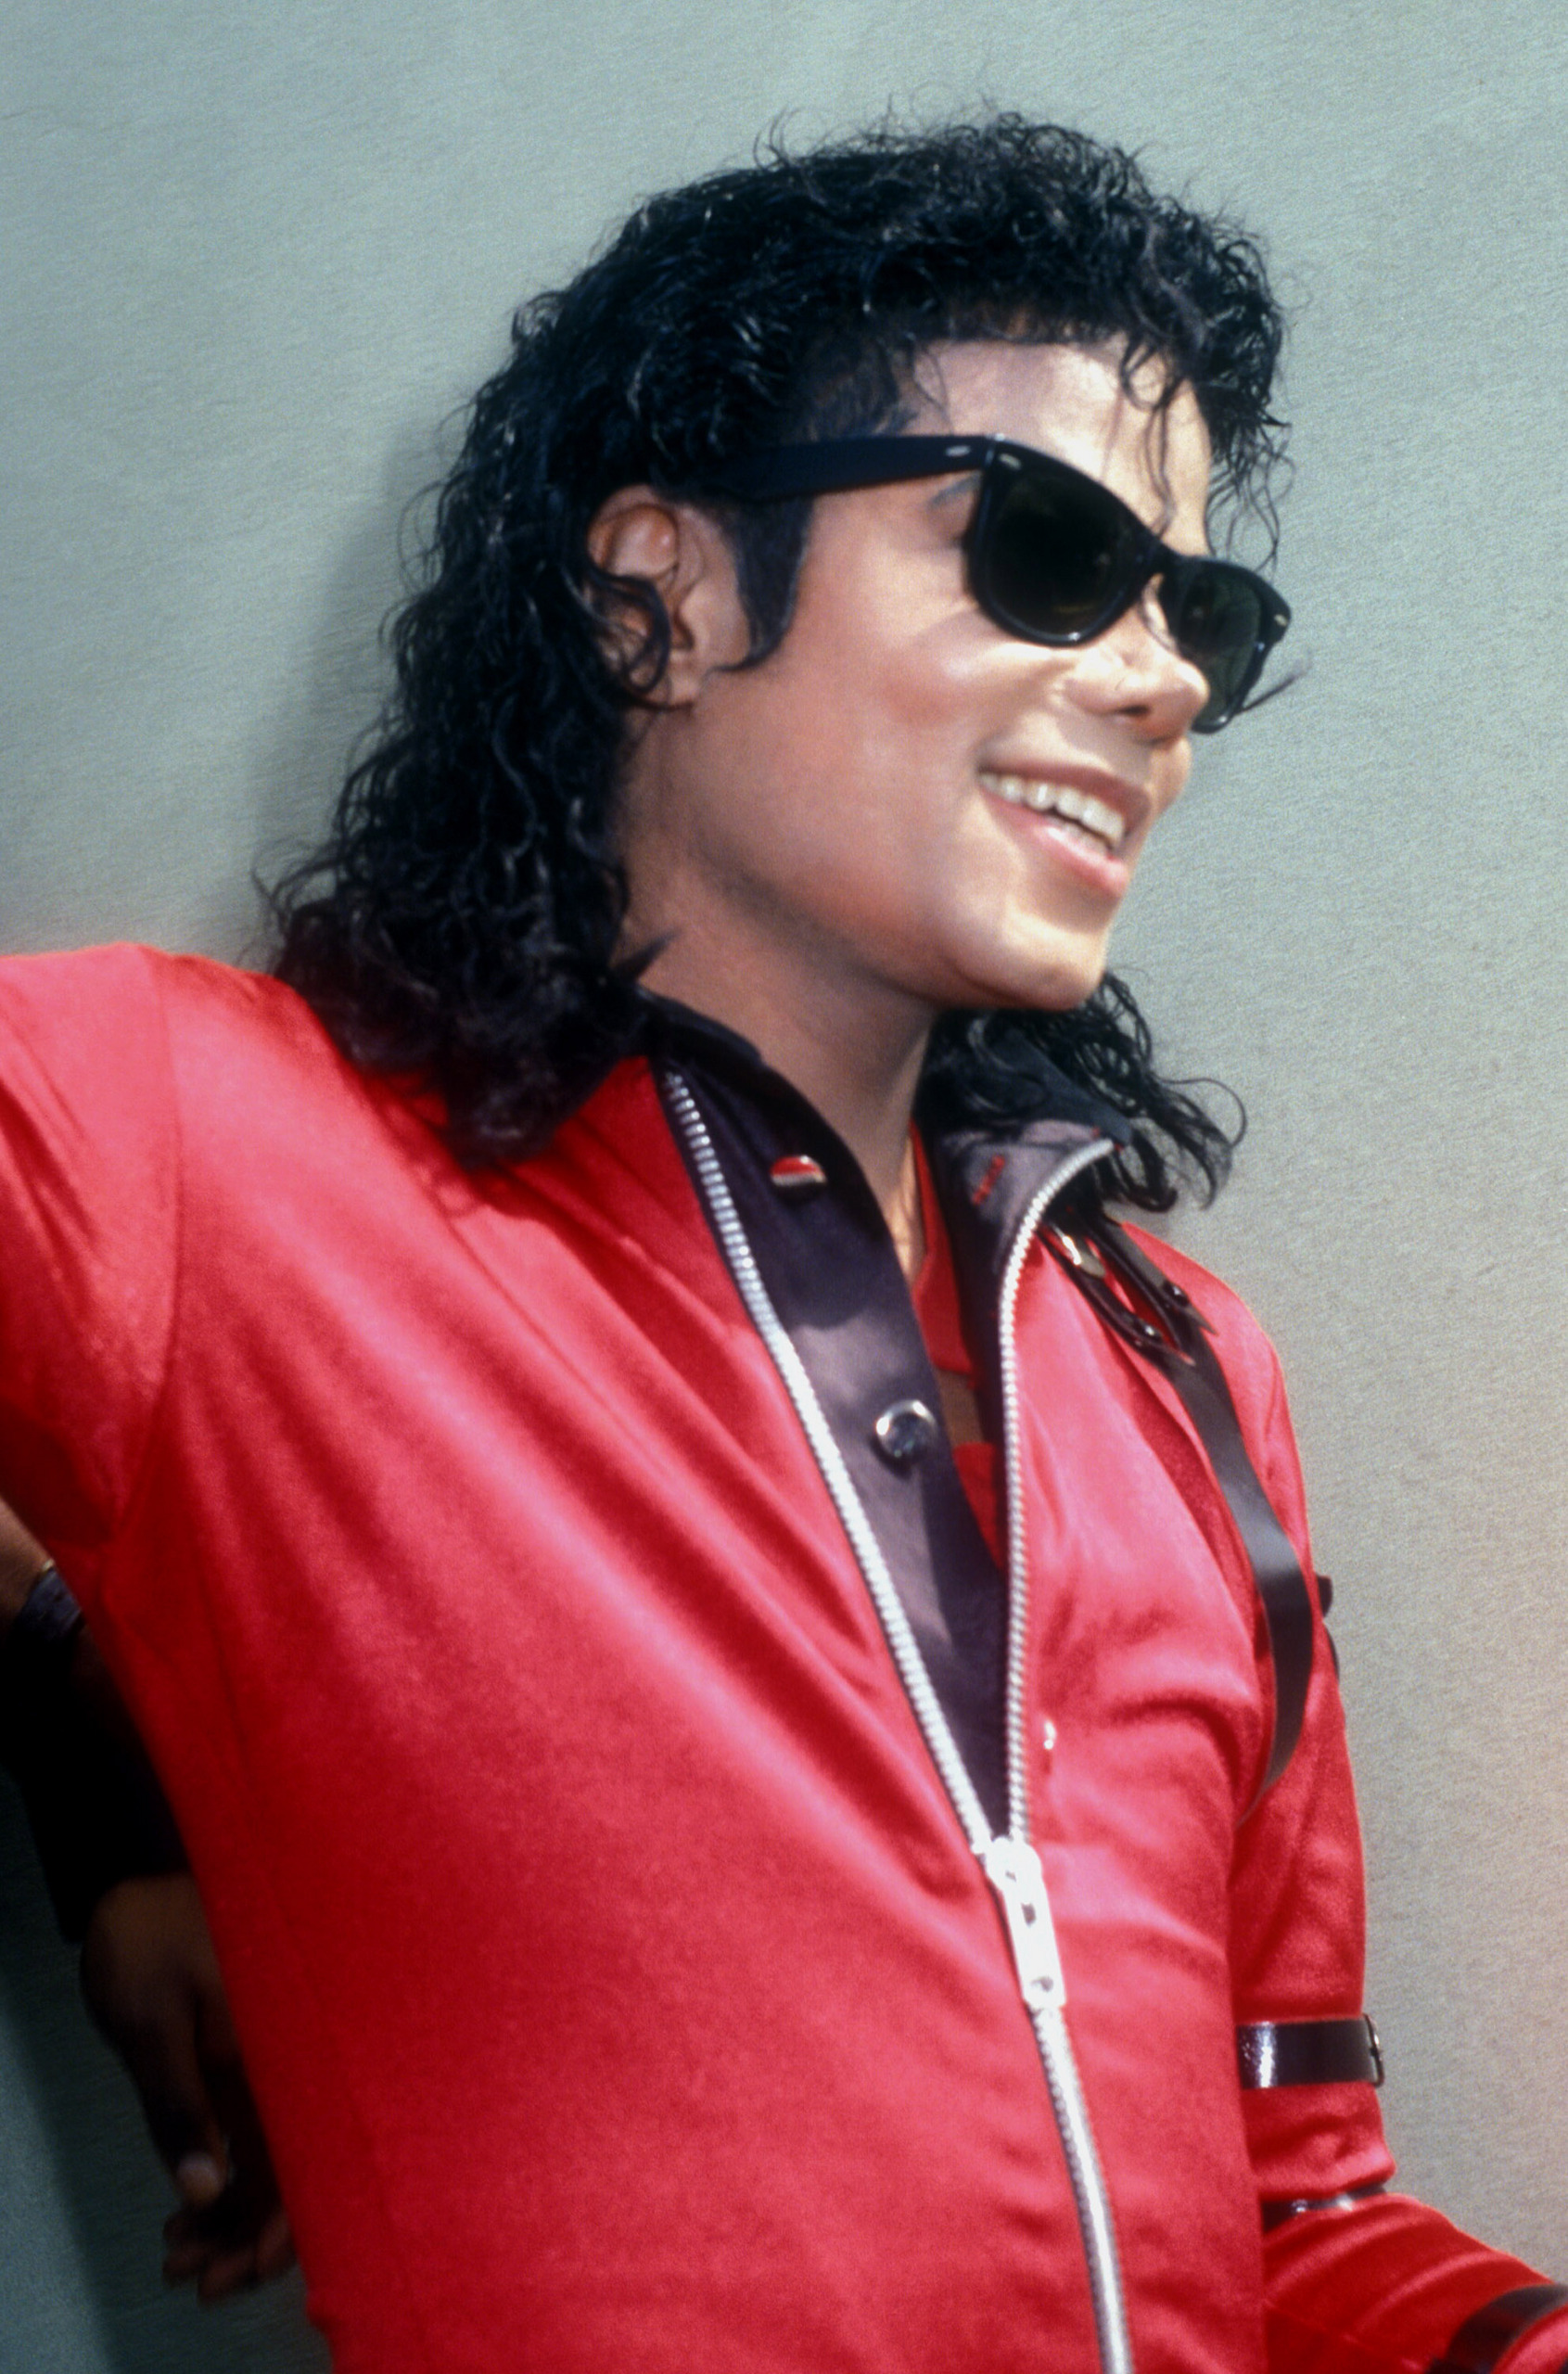 OOOOOOH MY GOD MICHAEL 당신 TAKE MY BREATH AWAY 당신 SEXY SEXY MAN!!!!!!